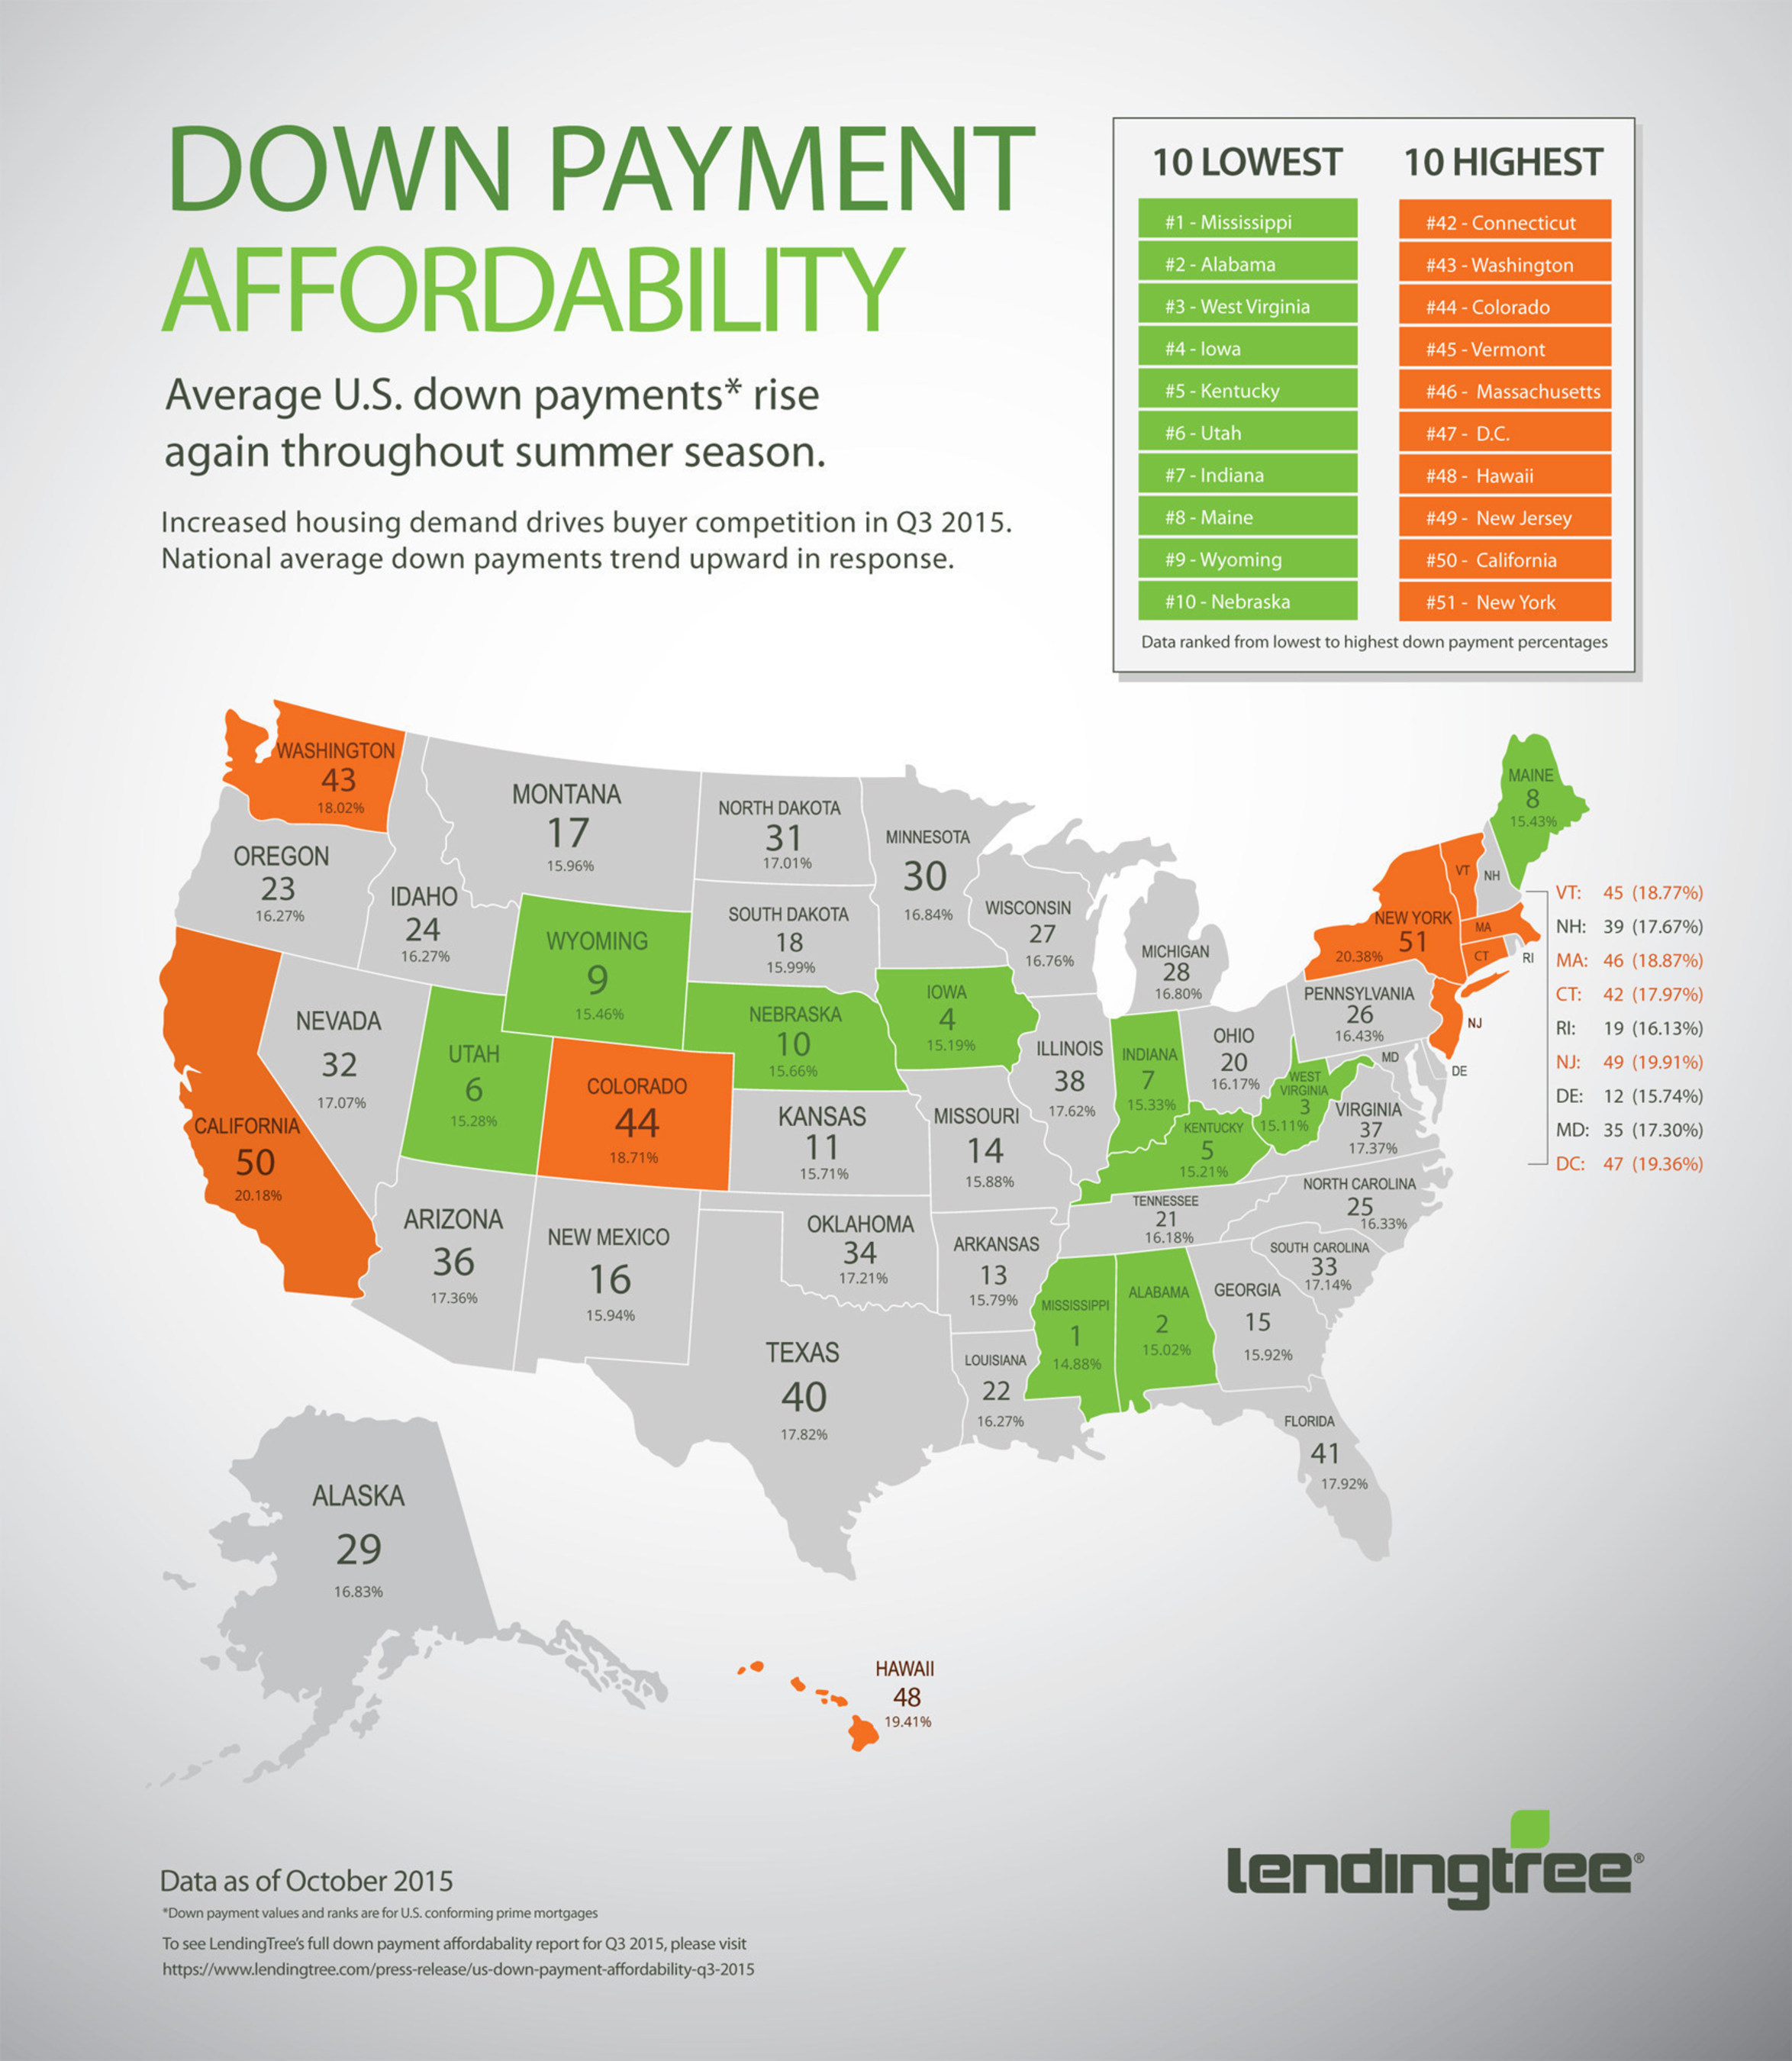 Average Down Payments Rise as Housing Demand and Buyer Competition Increase